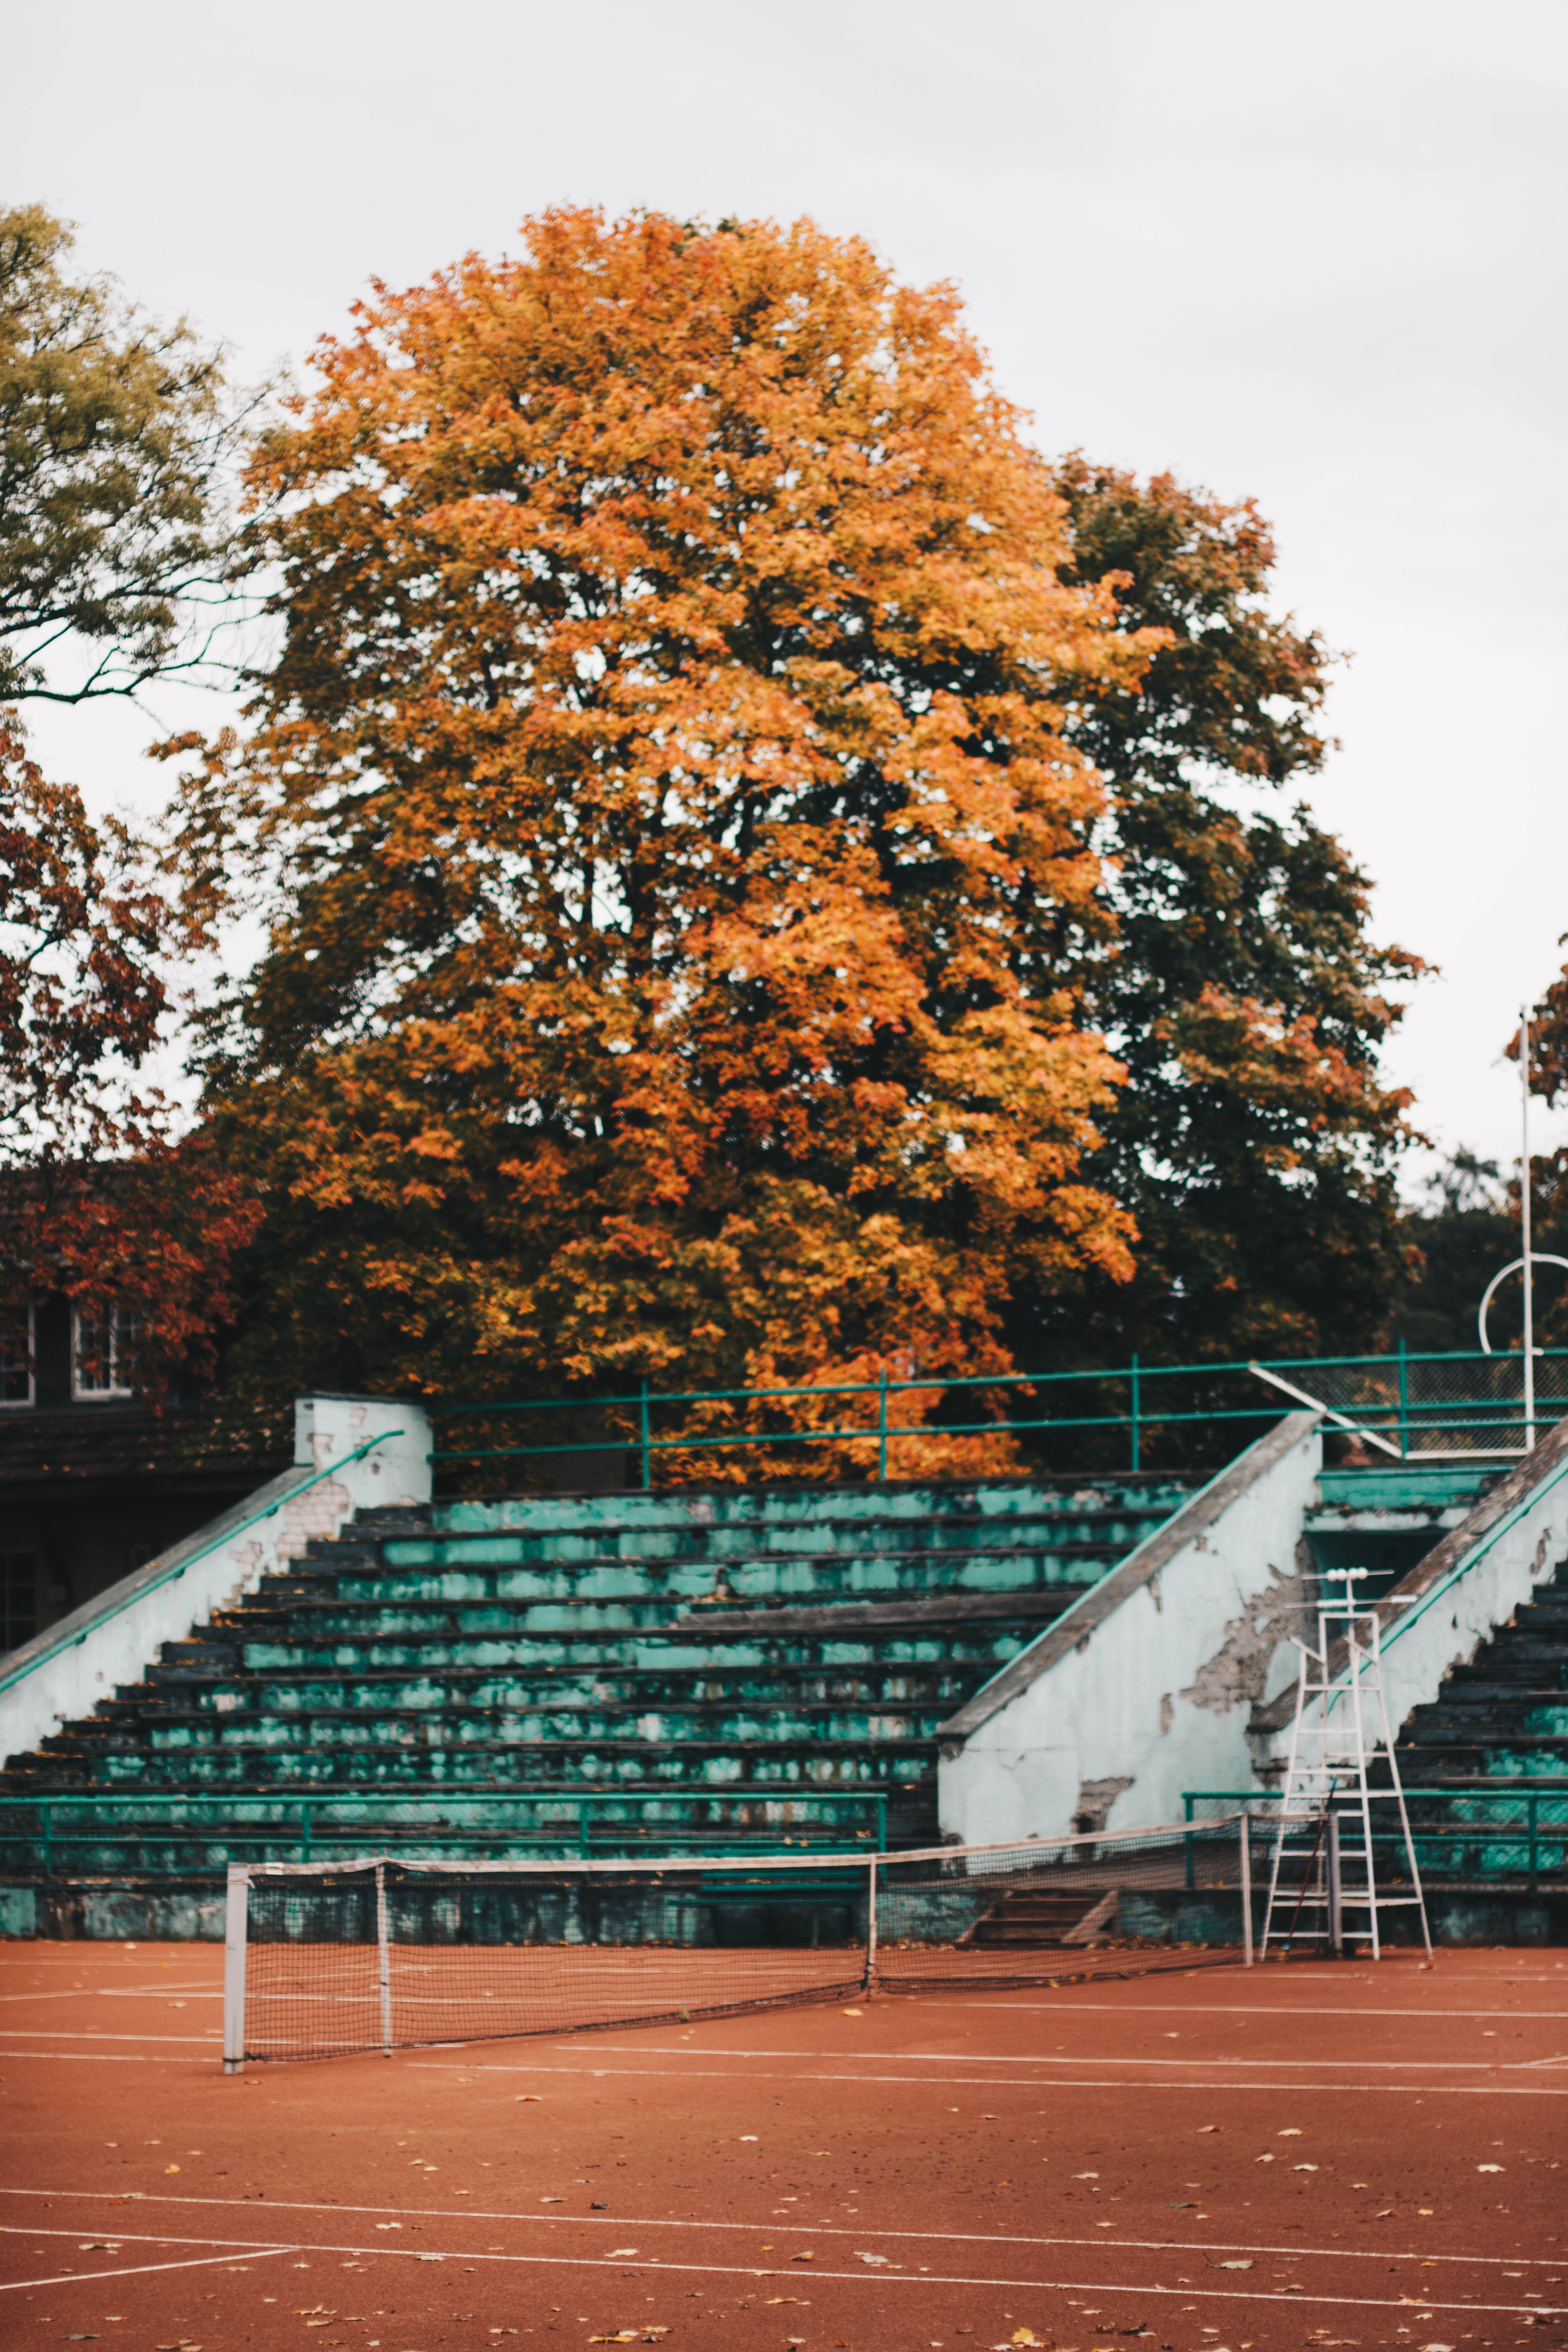 Empty Green and White Concrete Bleachers Near Brown Leaf Tree at Daytime